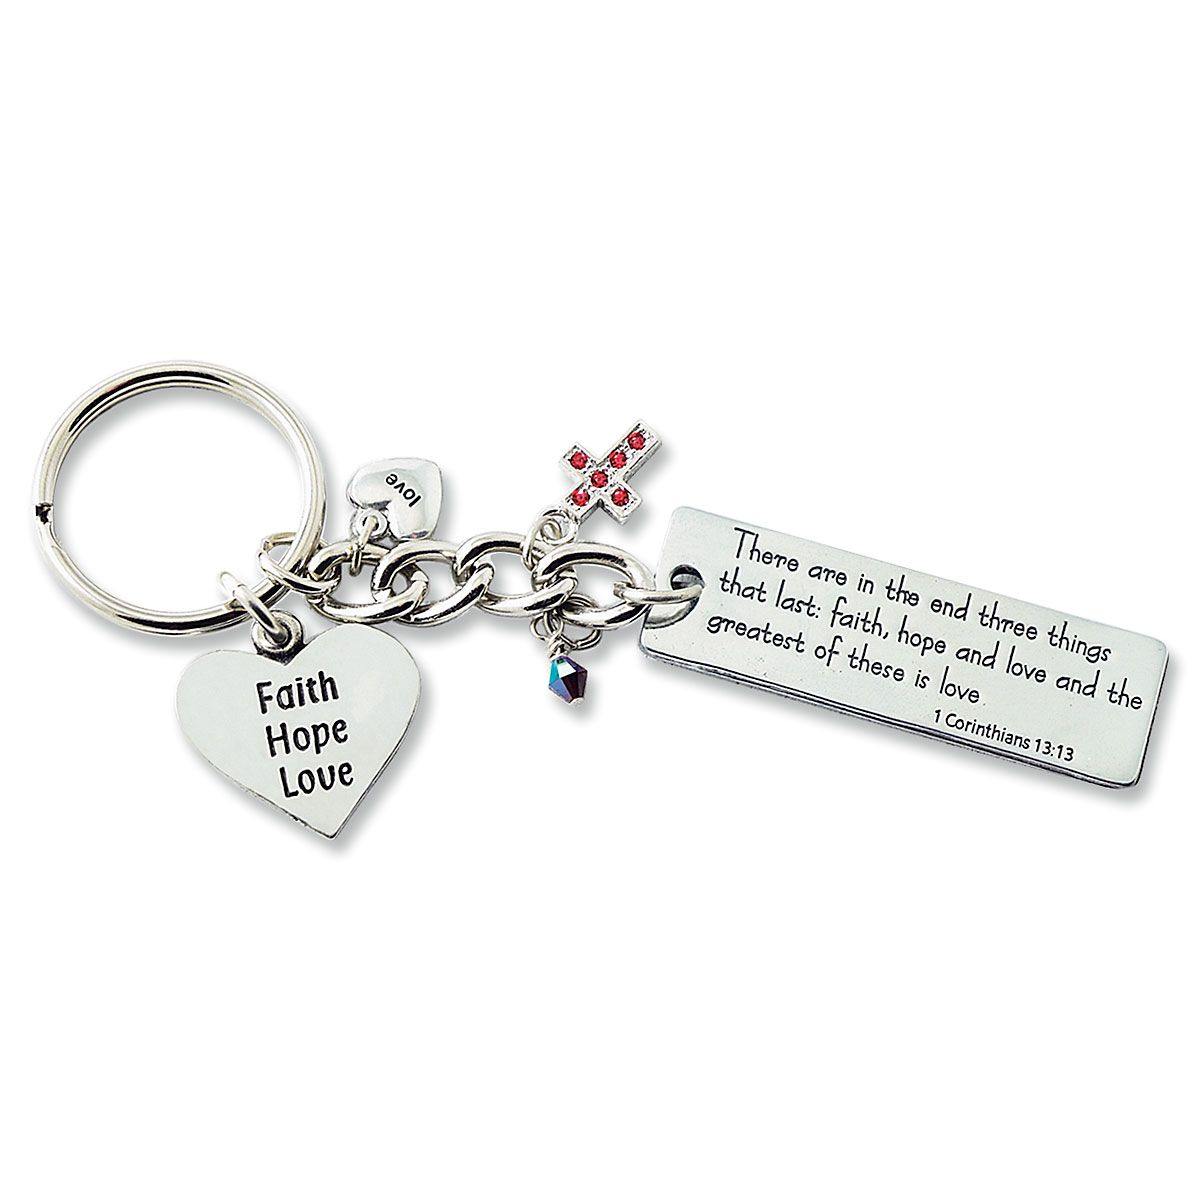 Faith Hope Love Key Chain